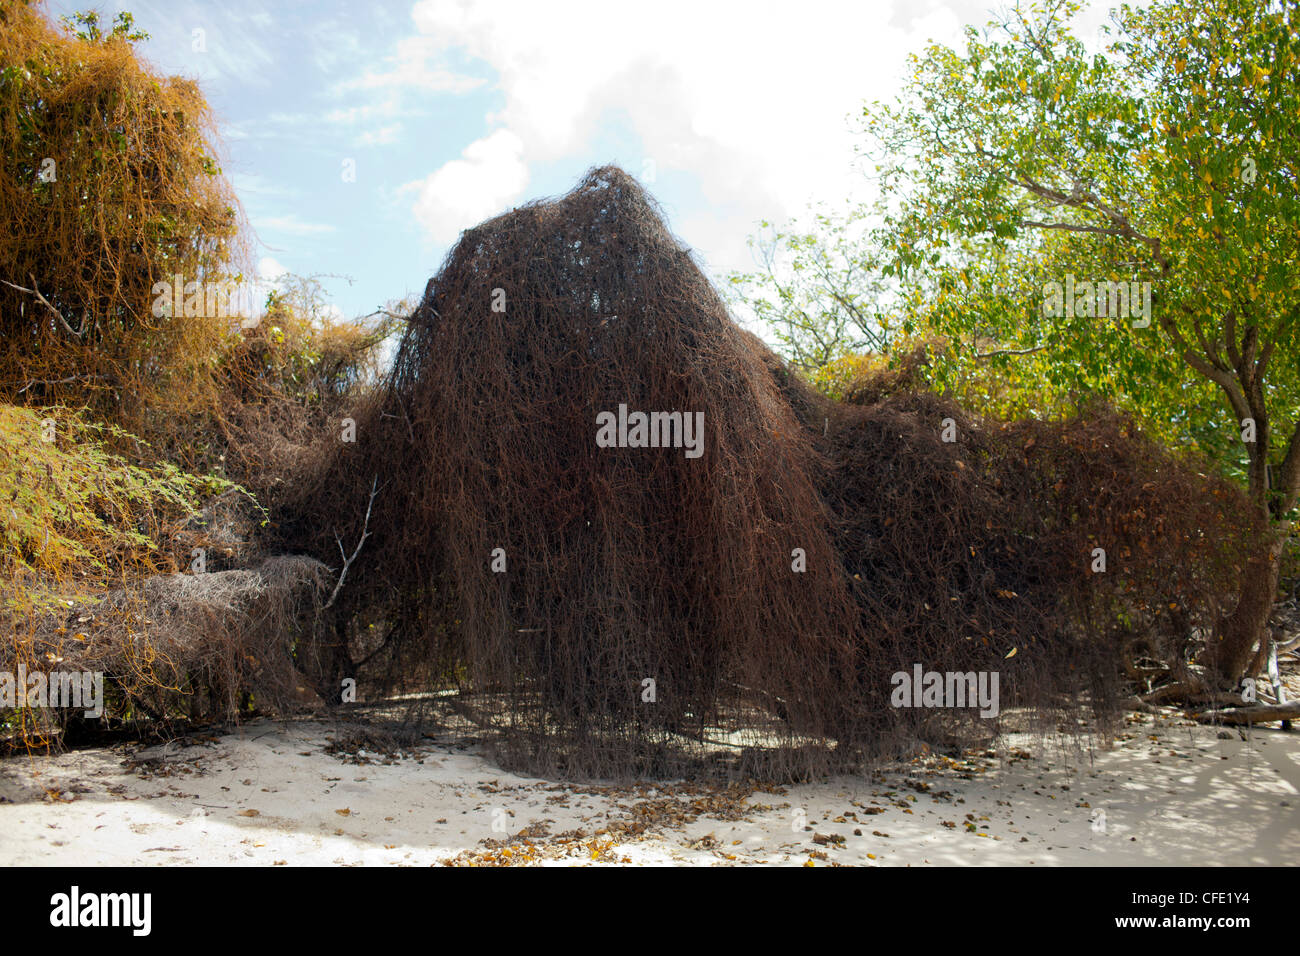 A heavy cover of vines smothers a tree at Campbell Bay on Union Island, St. Vincent and the Grenadines. - Stock Image